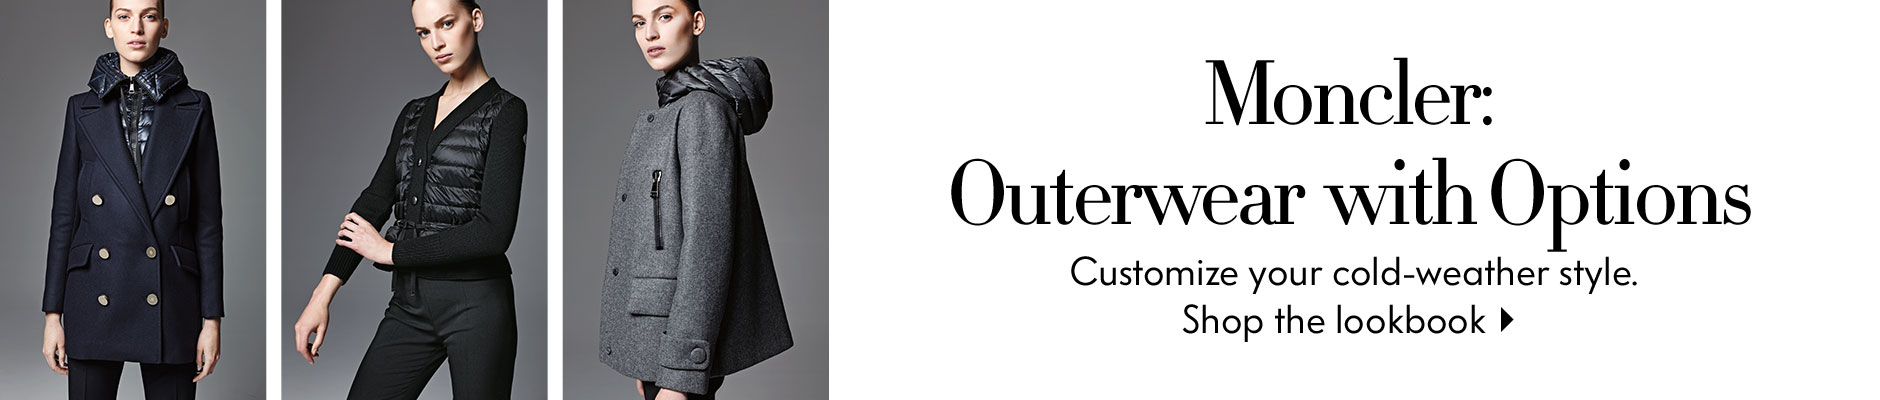 Moncler: Outerwear with Options - Customize your cold-weather style. - Shop the lookbook